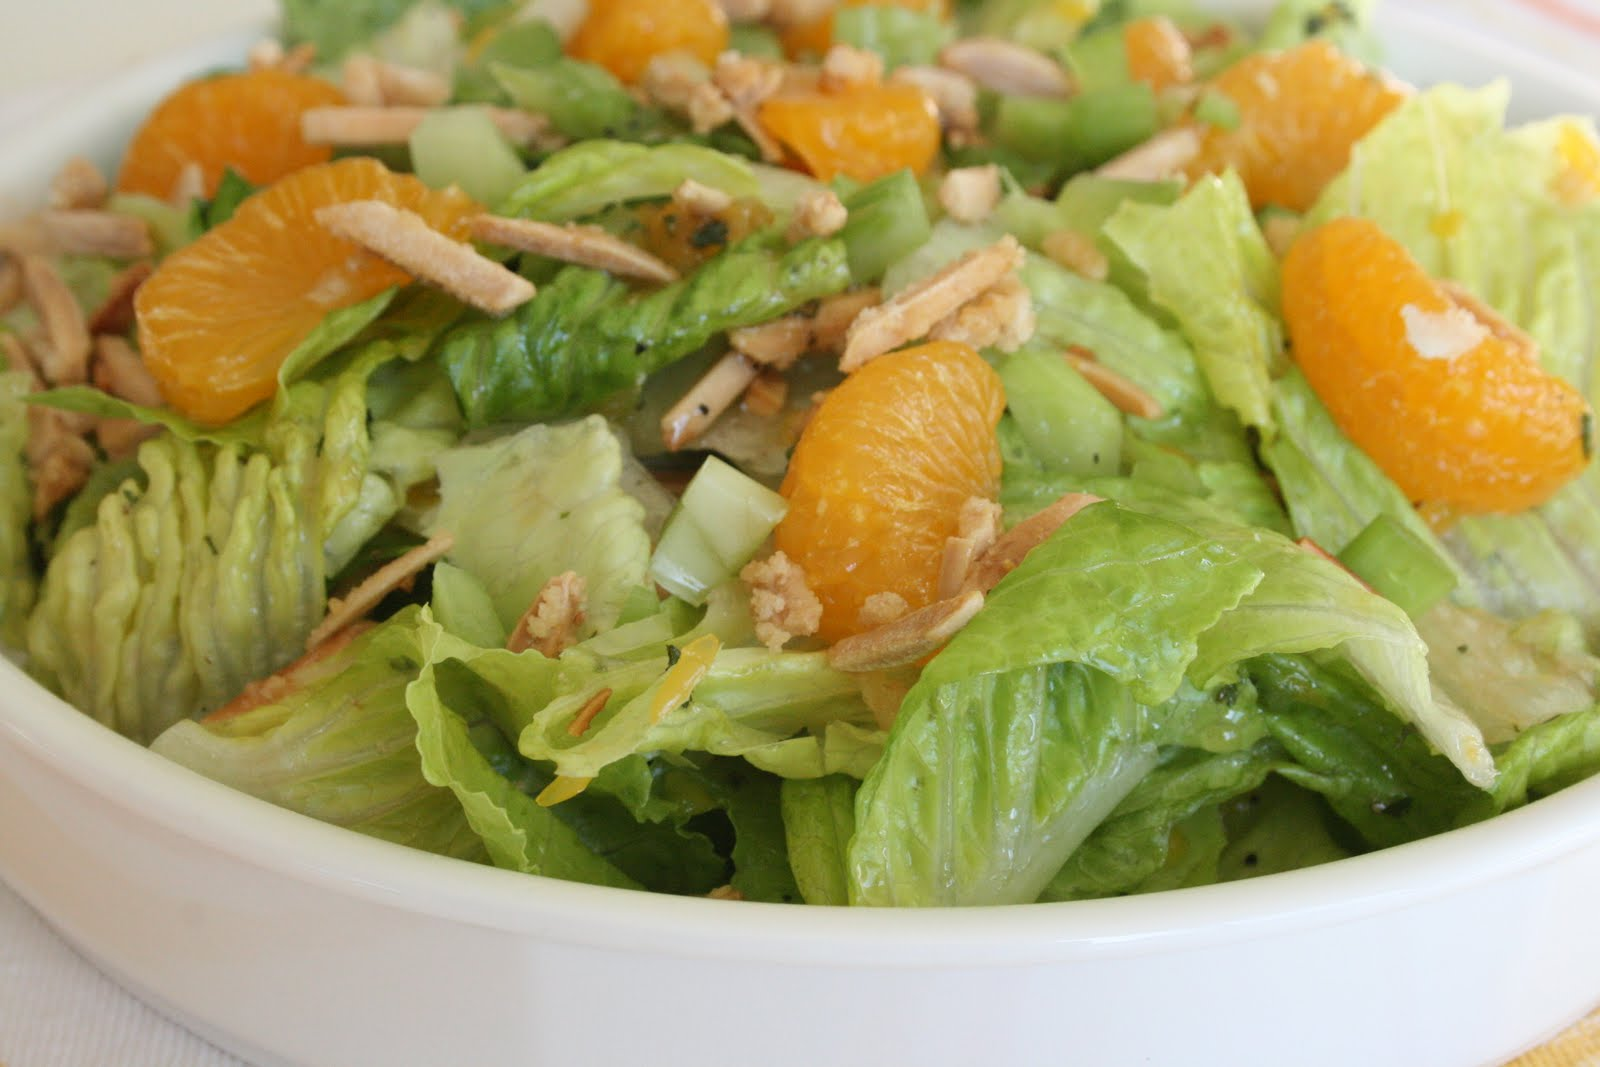 This MANDARIN ORANGE SALAD with ALMONDS AND CIDER VINAIGRETTE has been a favorite in our family forever! SO flavorful and easy Such a great salad to throw